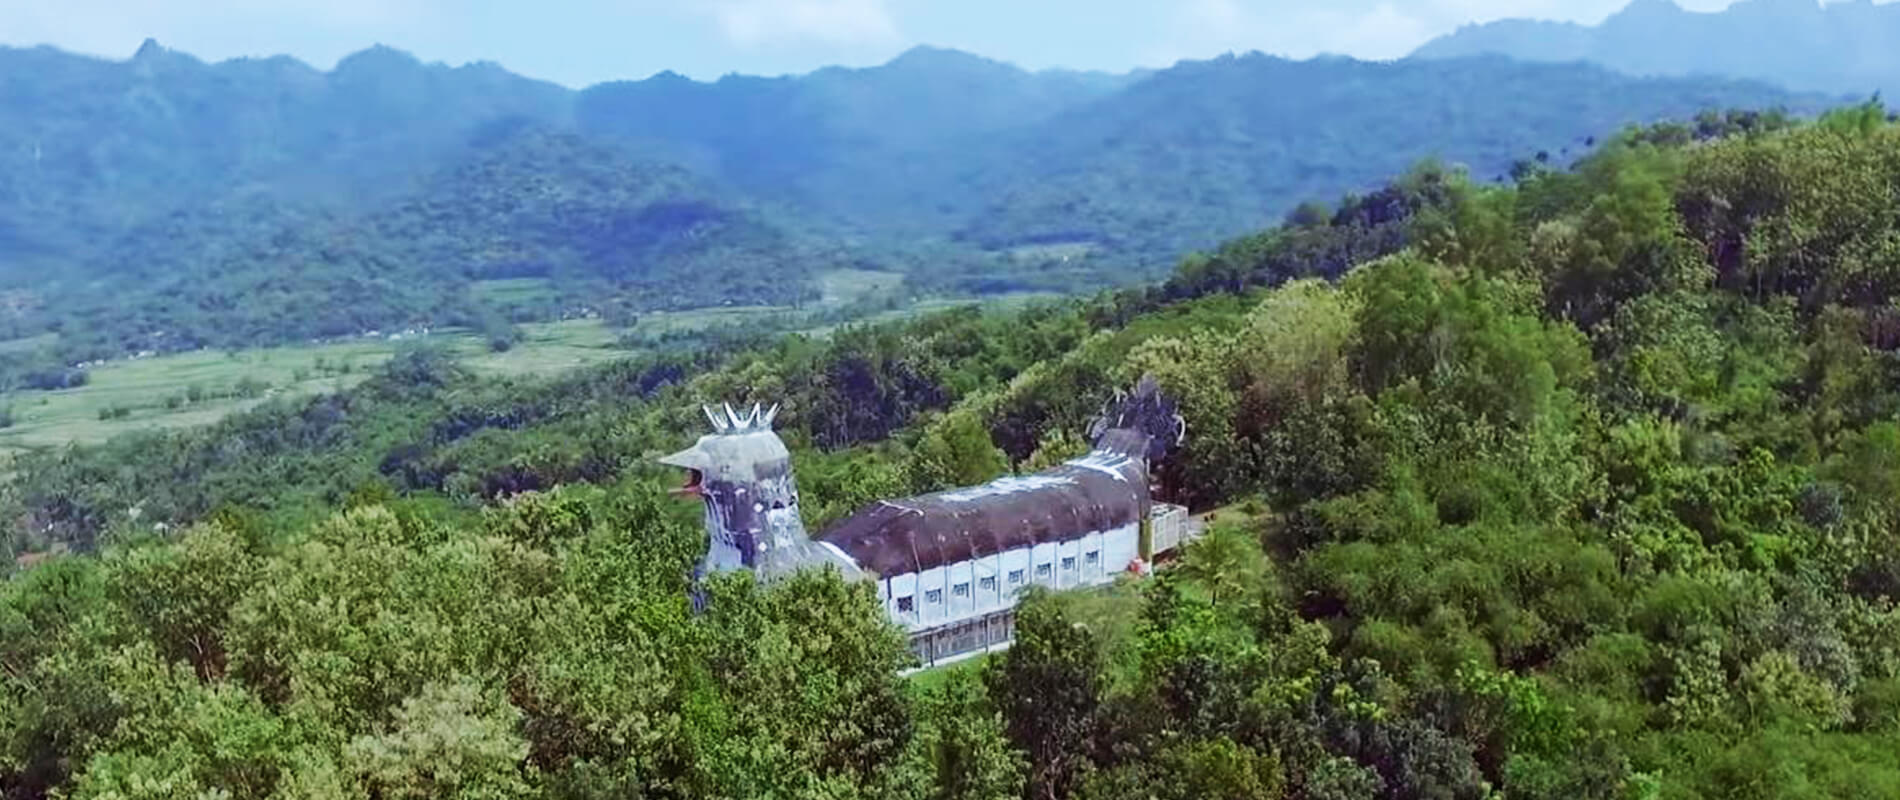 Gereja Ayam, the Mysterious Abandoned Chicken-Shaped Church